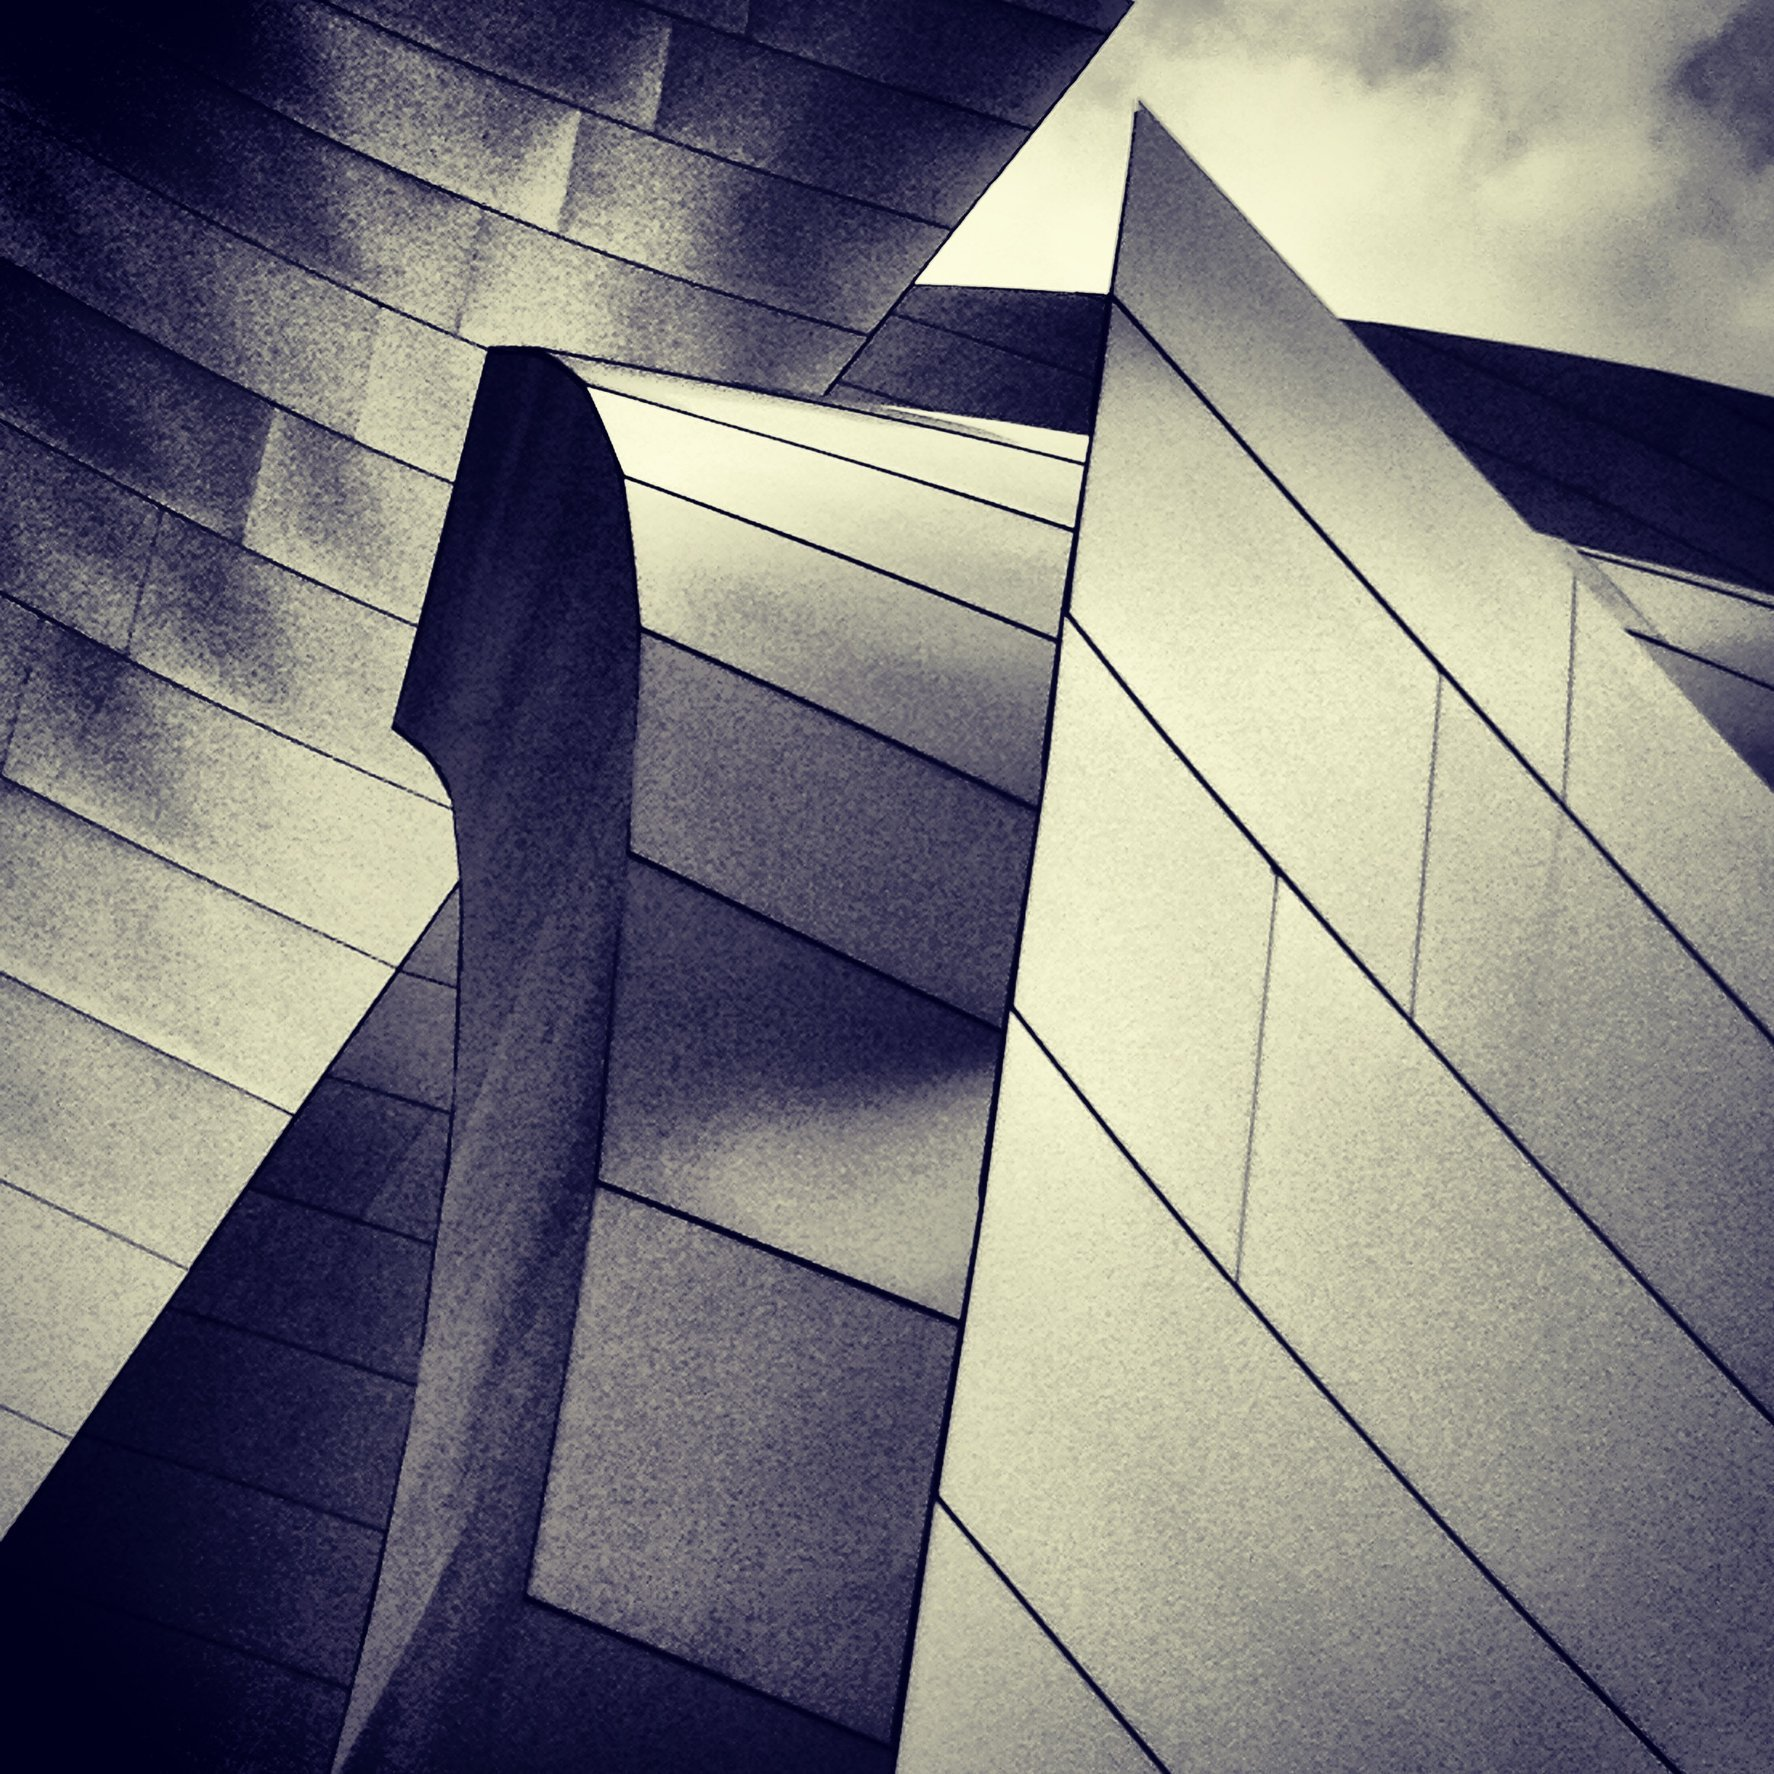 WALT DISNEY CONCERT HALL - B&W 1